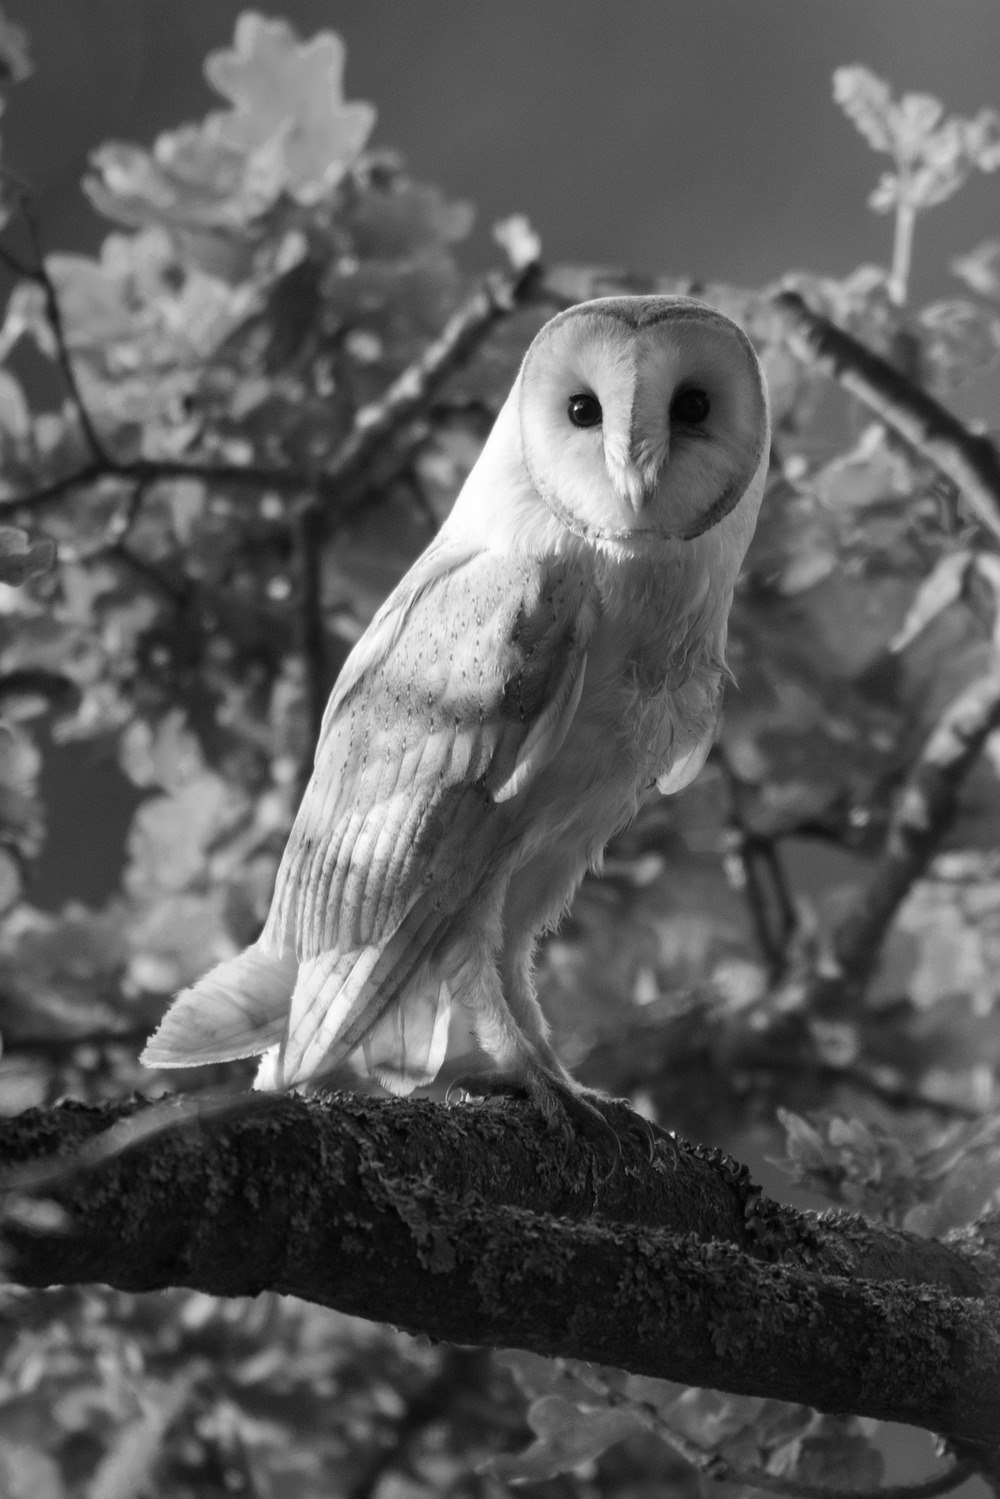 Barn owl in oak tree, Sussex Weald, England